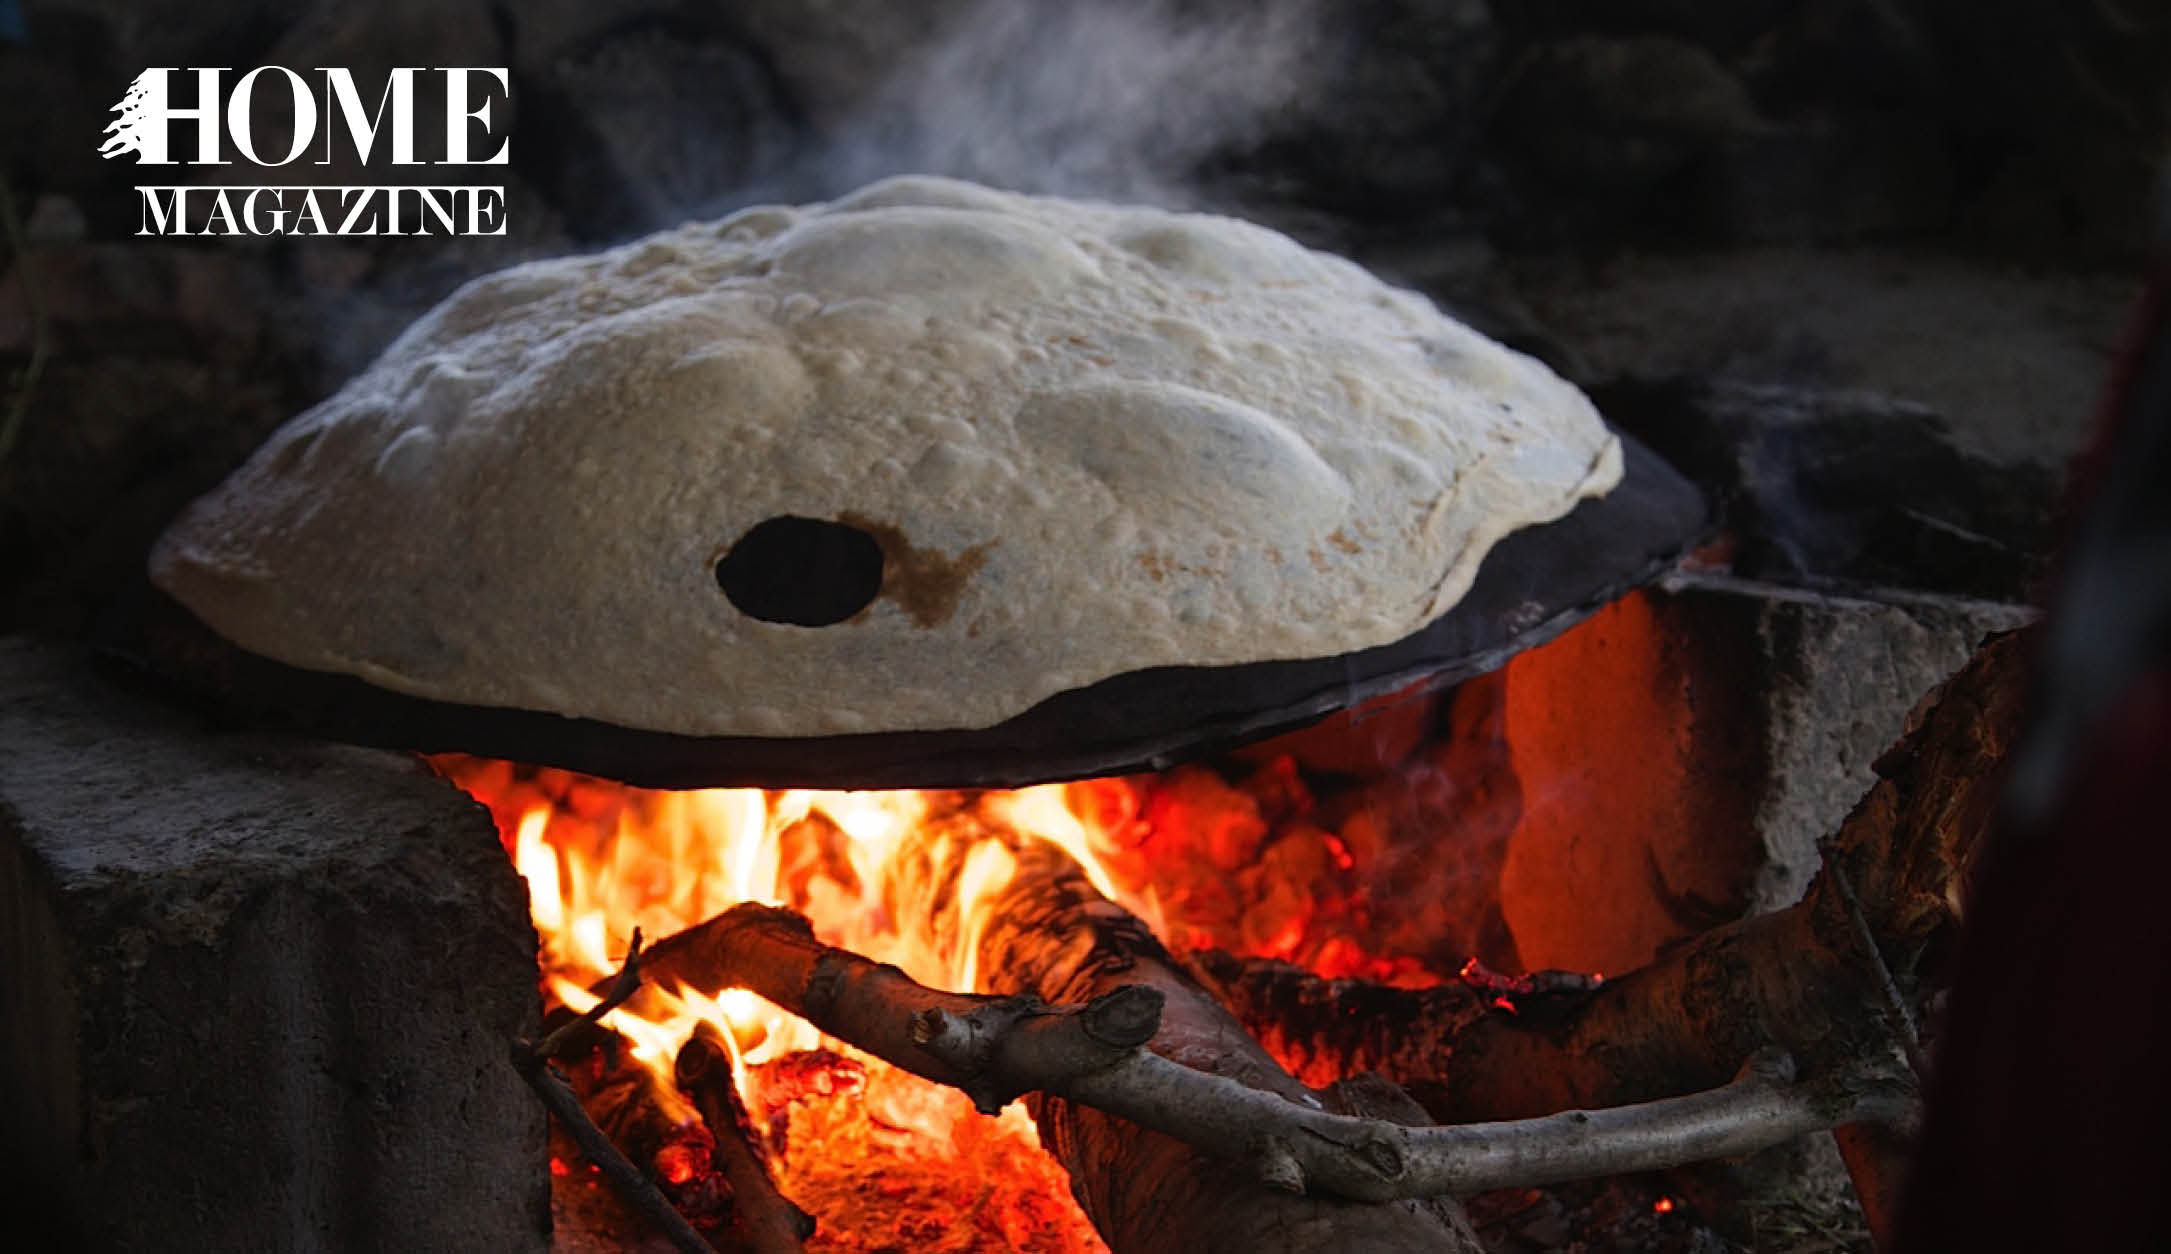 Bread being cooked